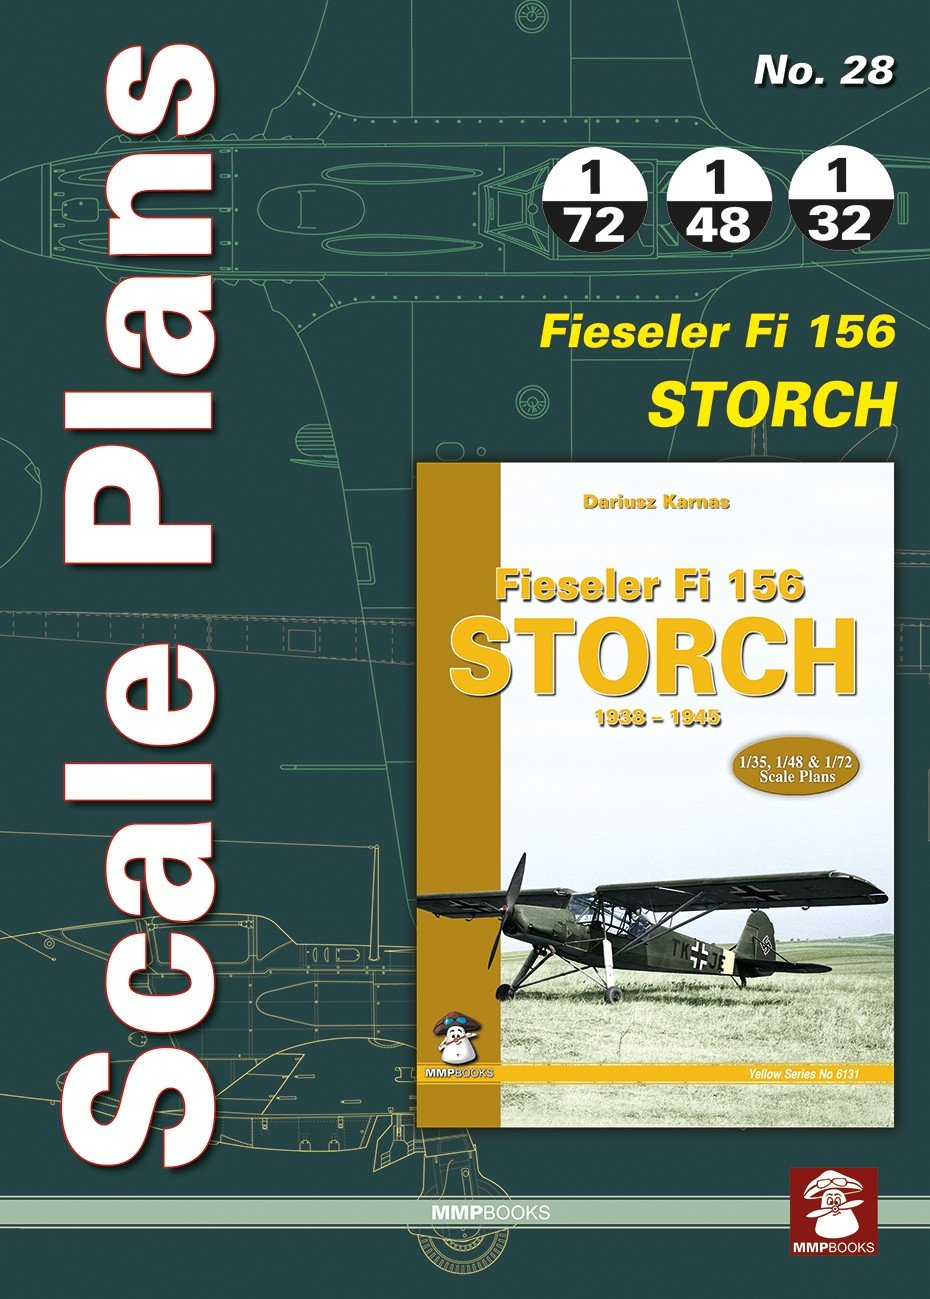 Scale Plans No. 28 Fieseler Fi 156 Storch